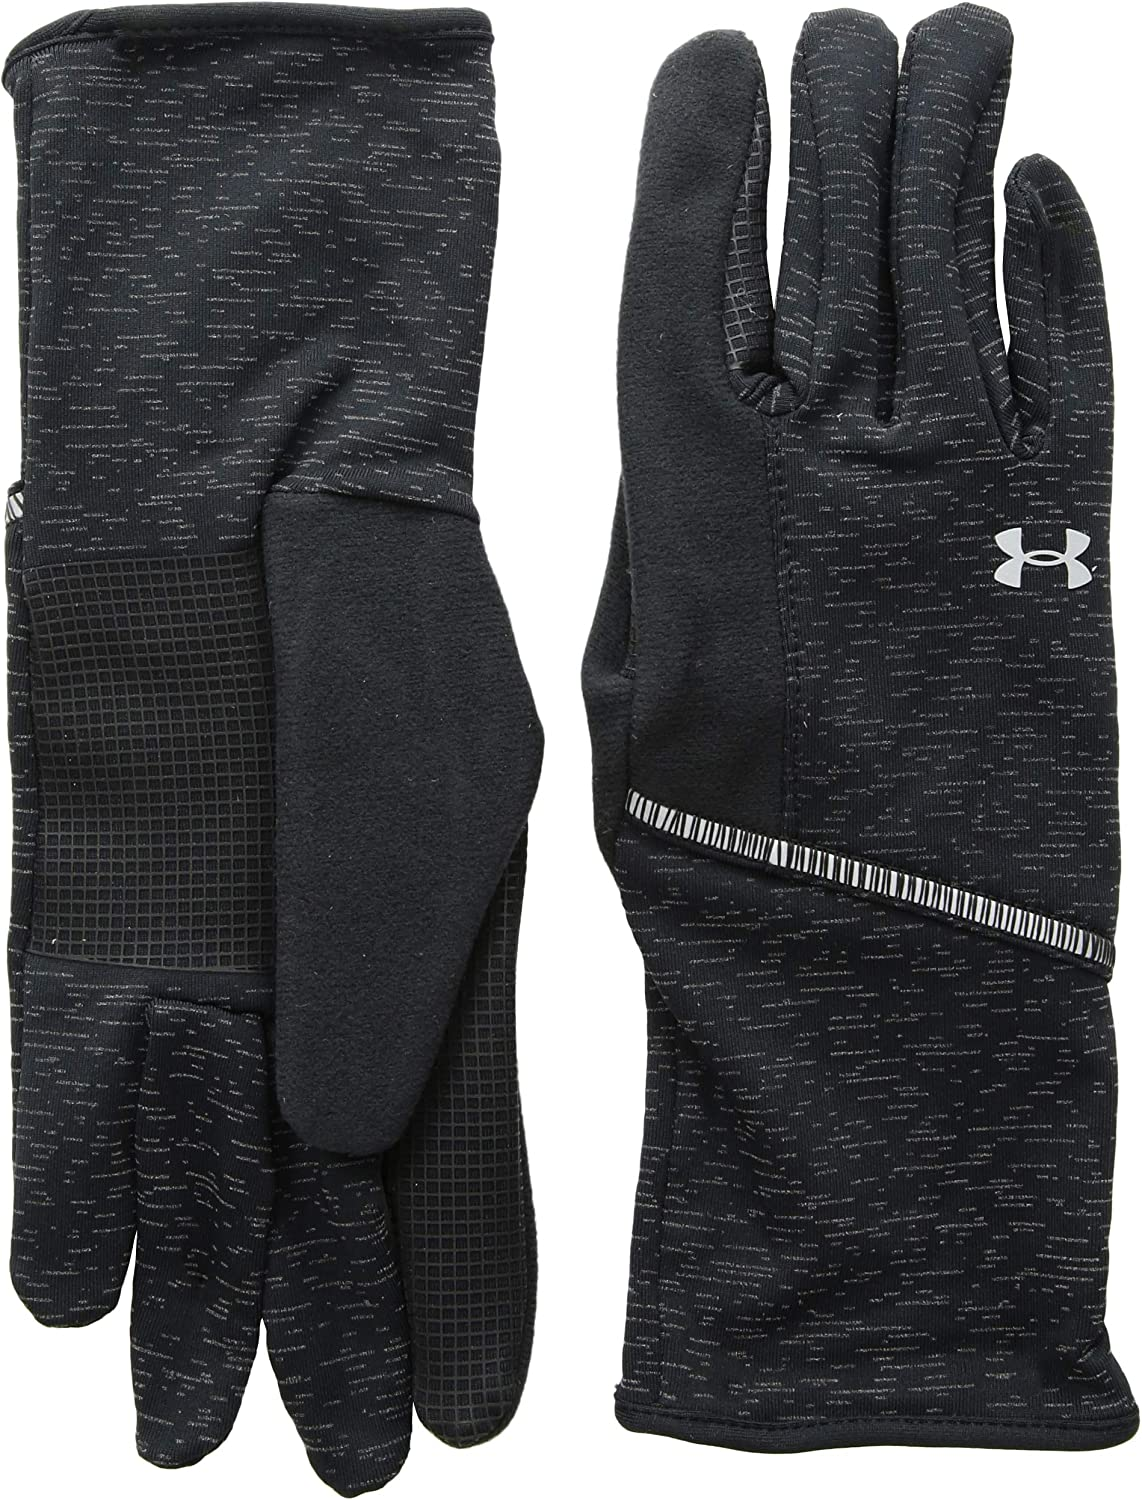 Under Armour Men's Storm Run Liner Gloves